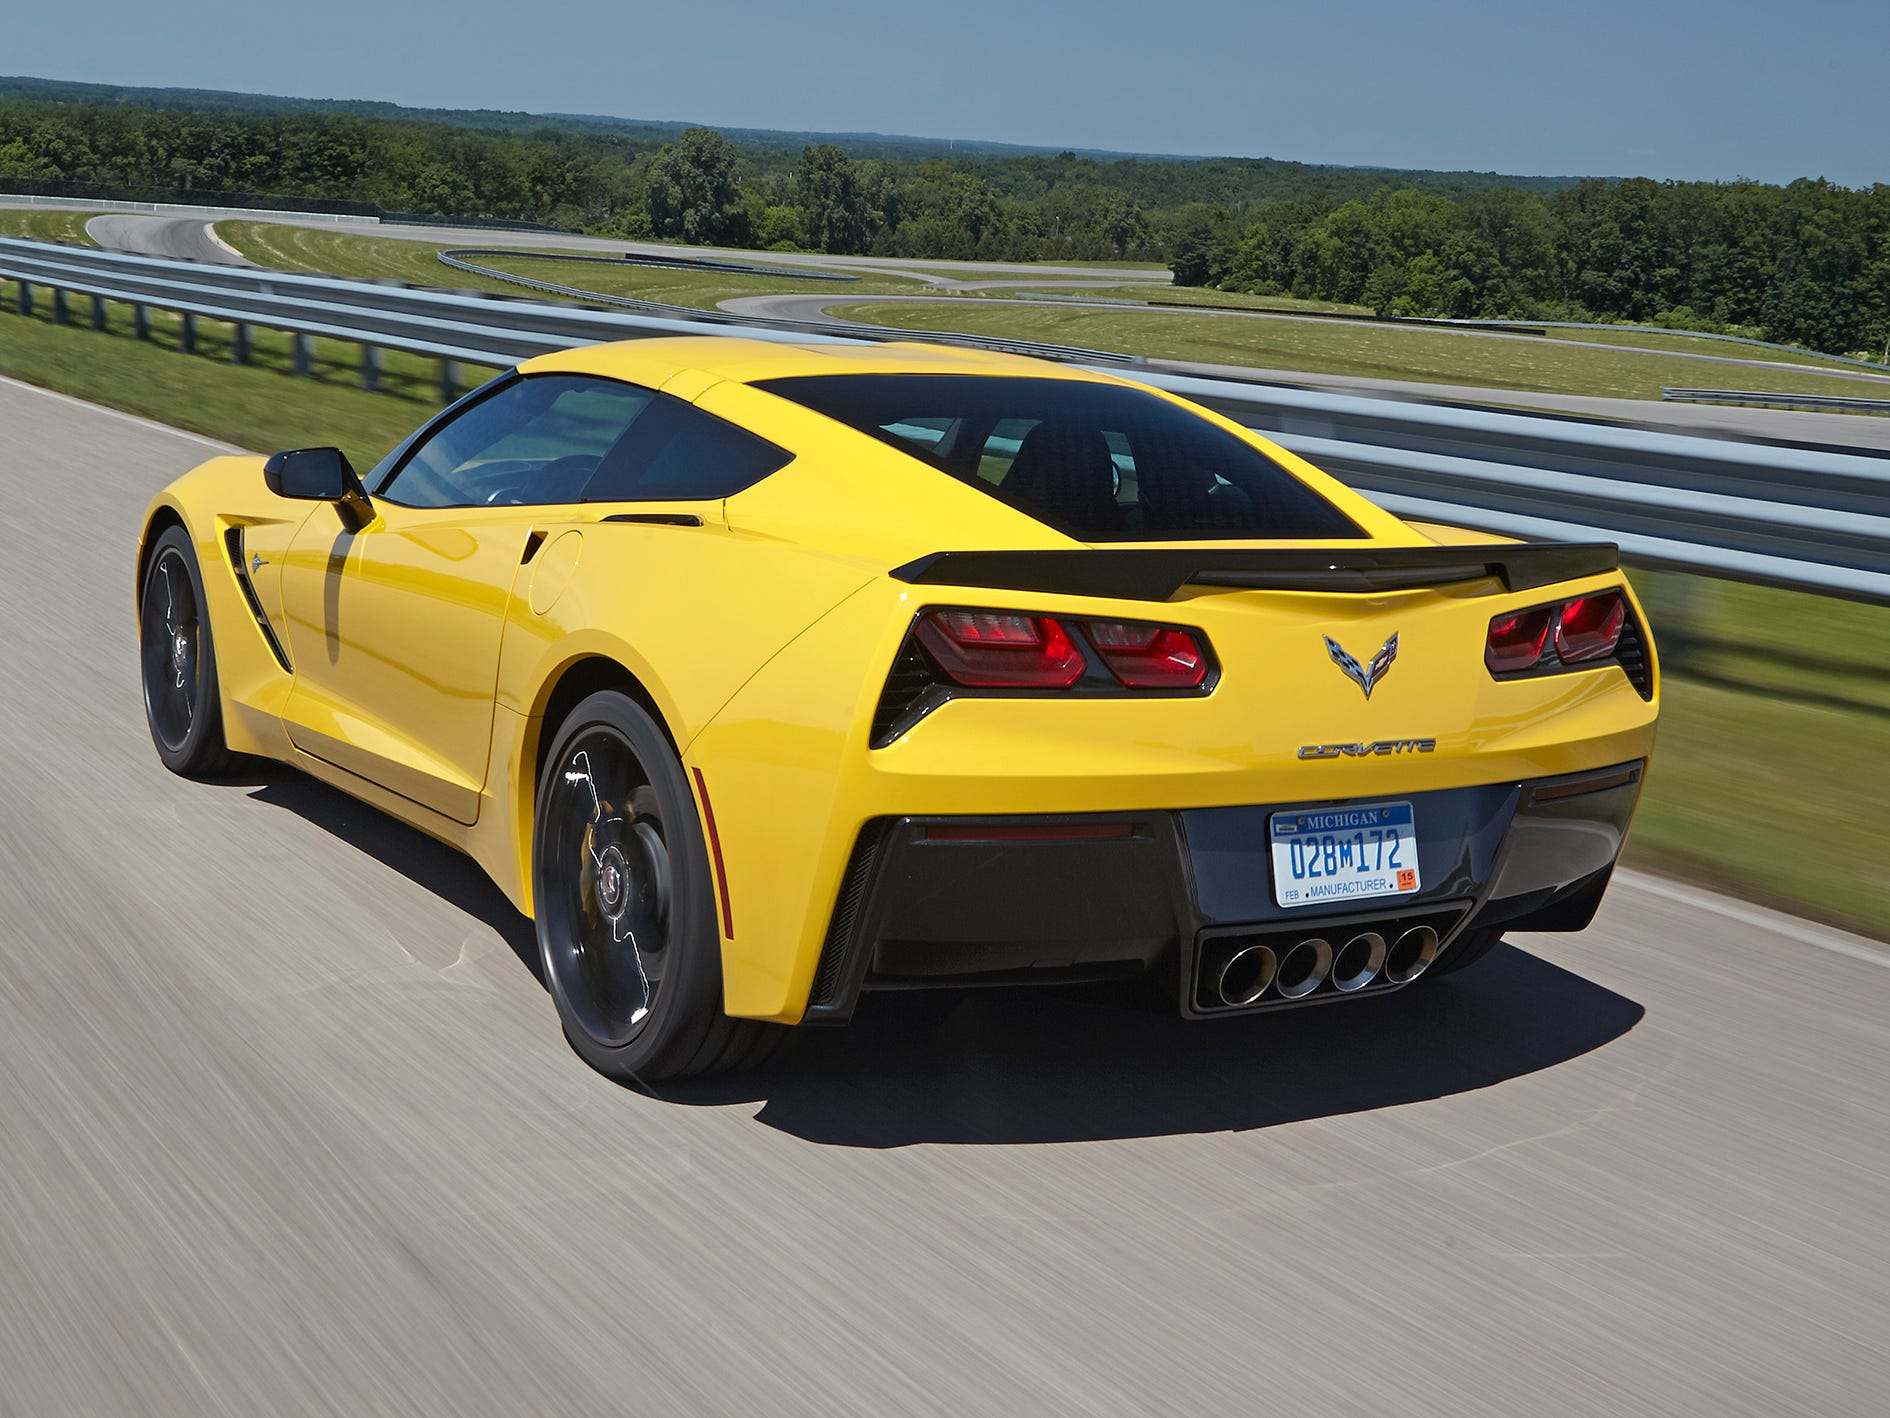 Chevy says the 2014 Corvette Stingray with optional Z51 performance package, will go 0 to 60 mph in 3.8 seconds, brake from 60 to 0 in 107 feet.